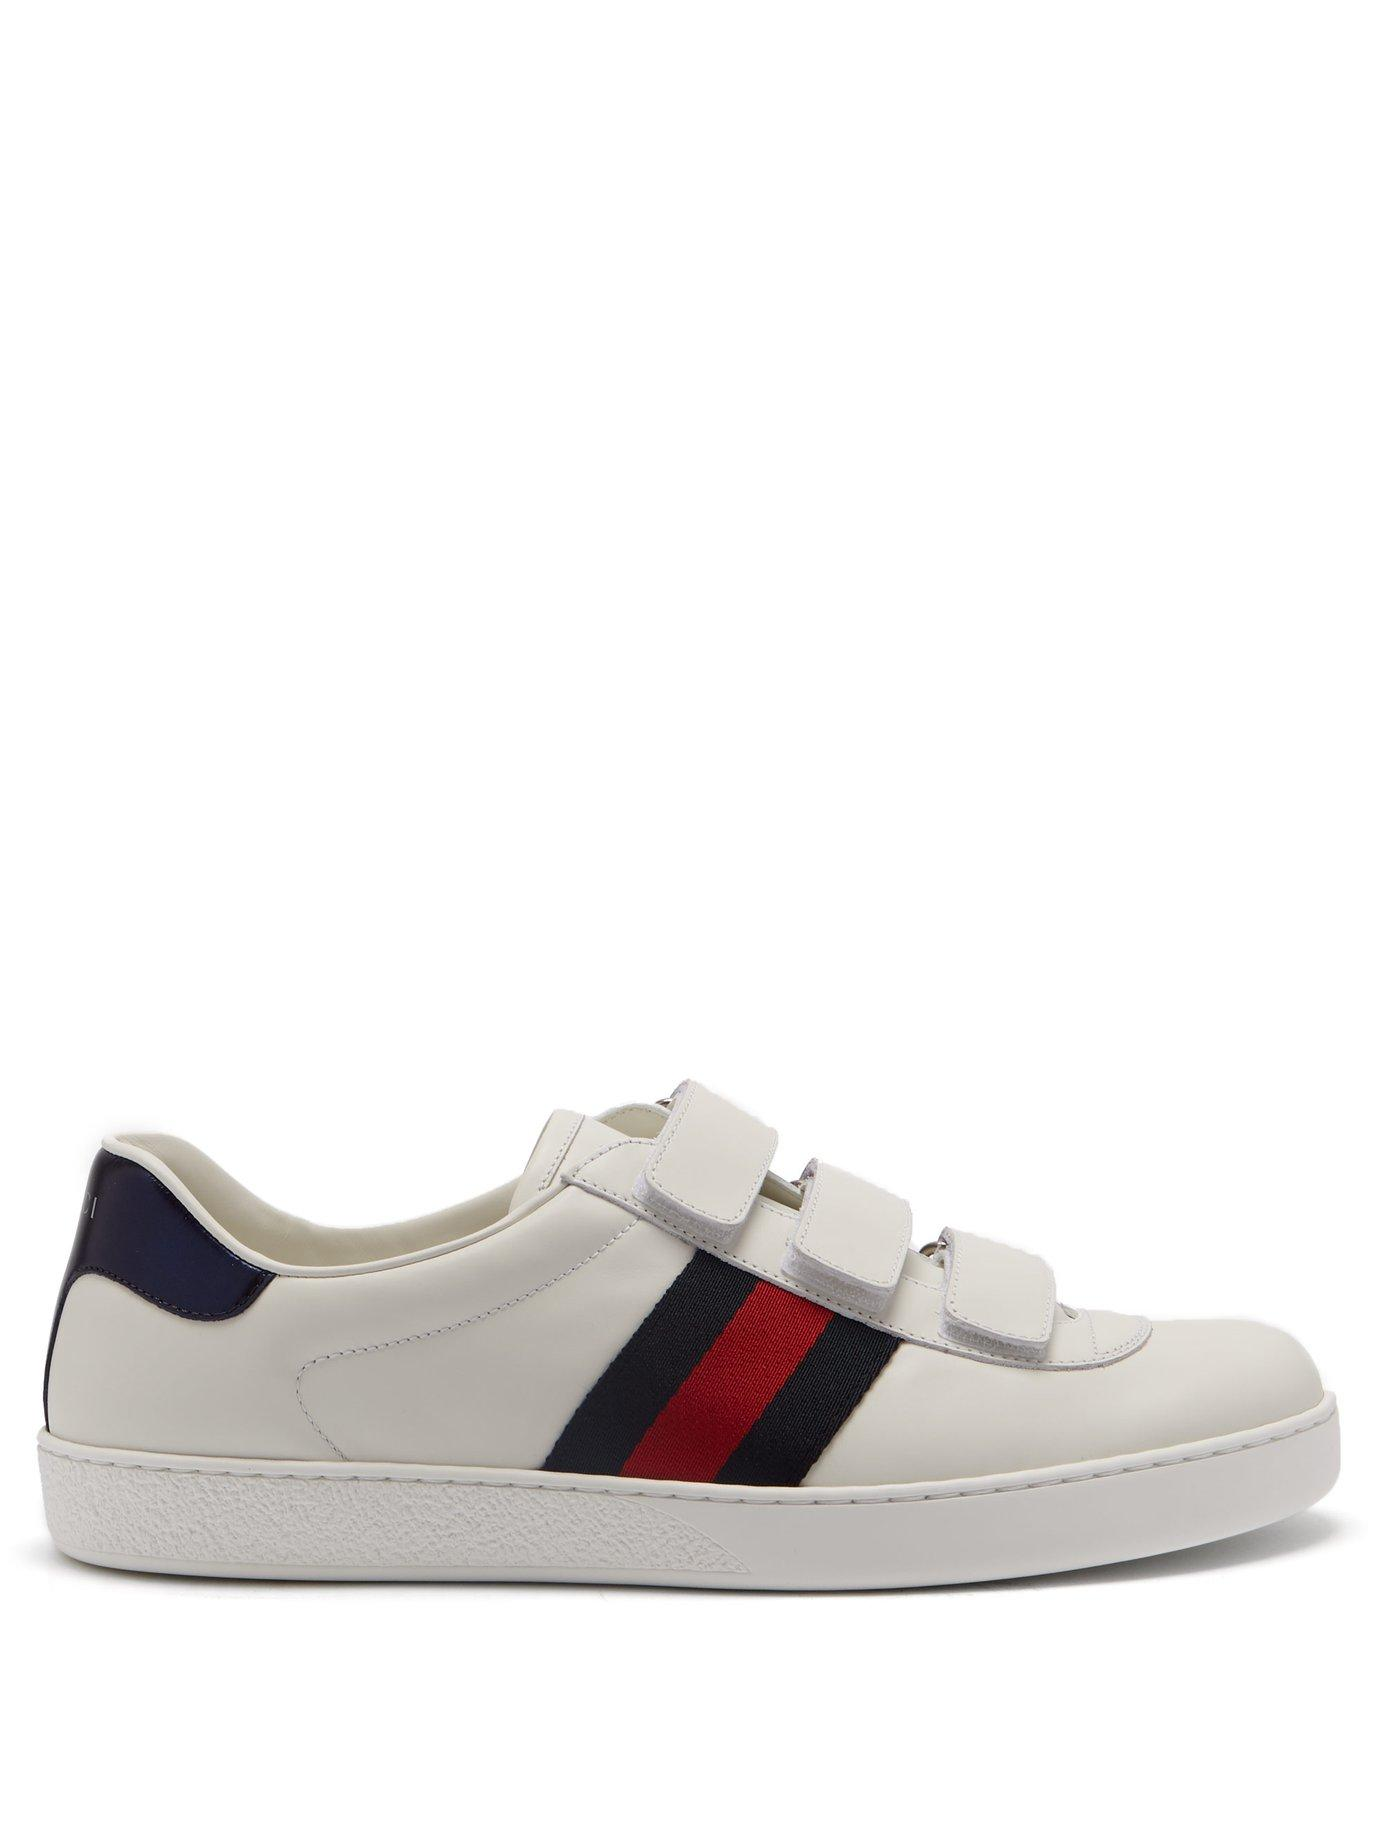 b07342cb715 Lyst - Gucci New Ace Web Stripe Low Top Leather Trainers in White ...